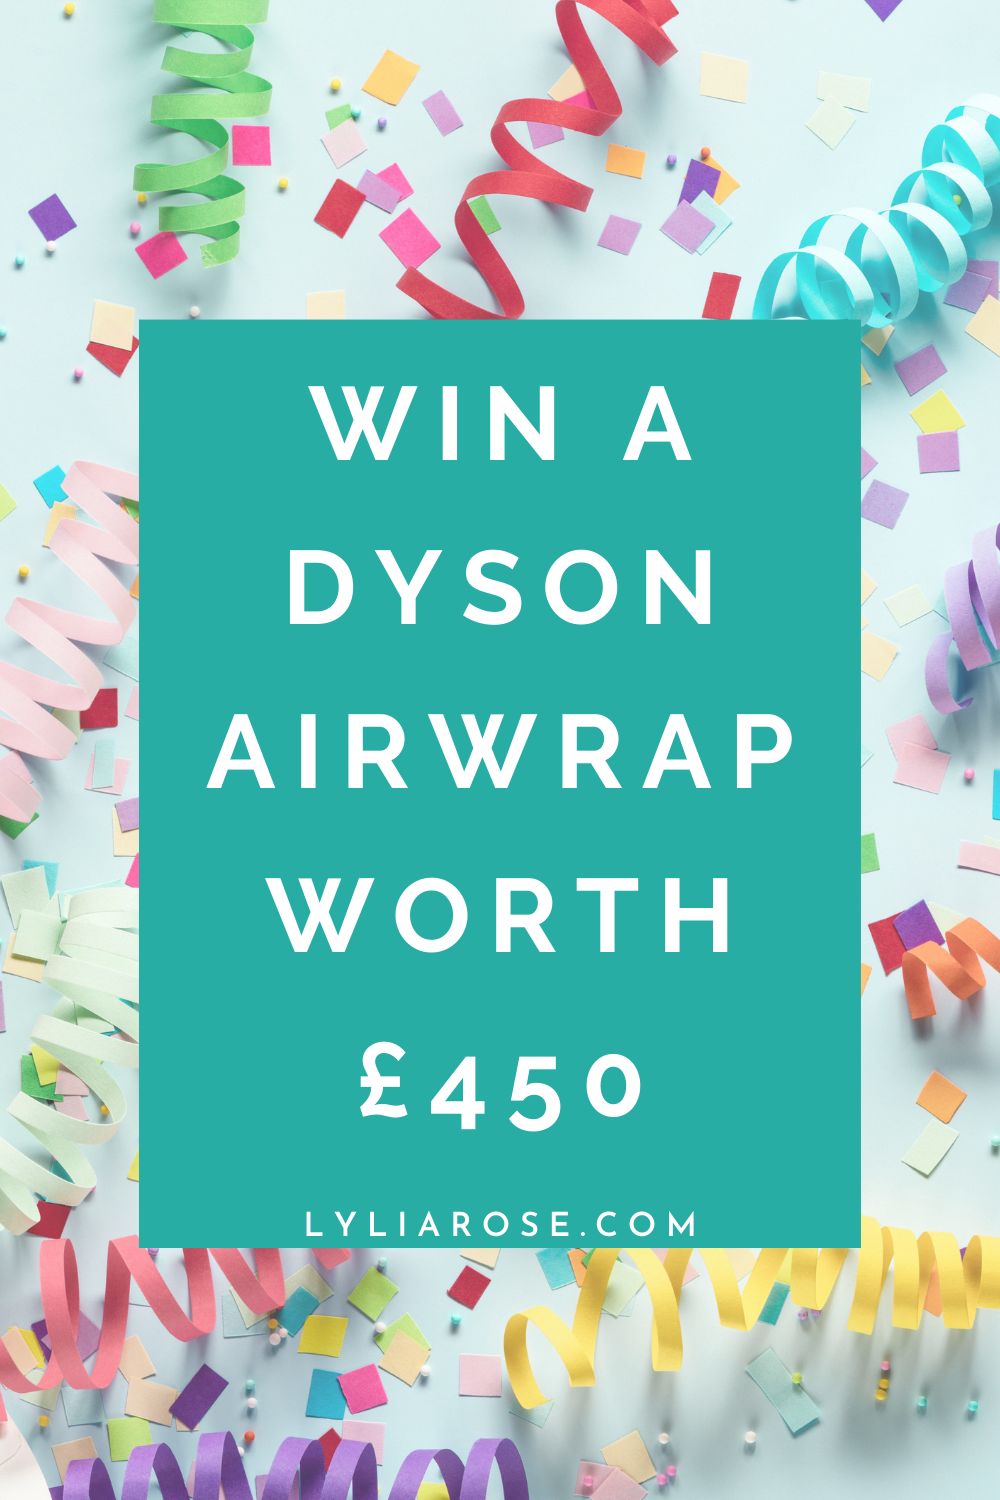 Win a Dyson Airwrap worth a whopping £450